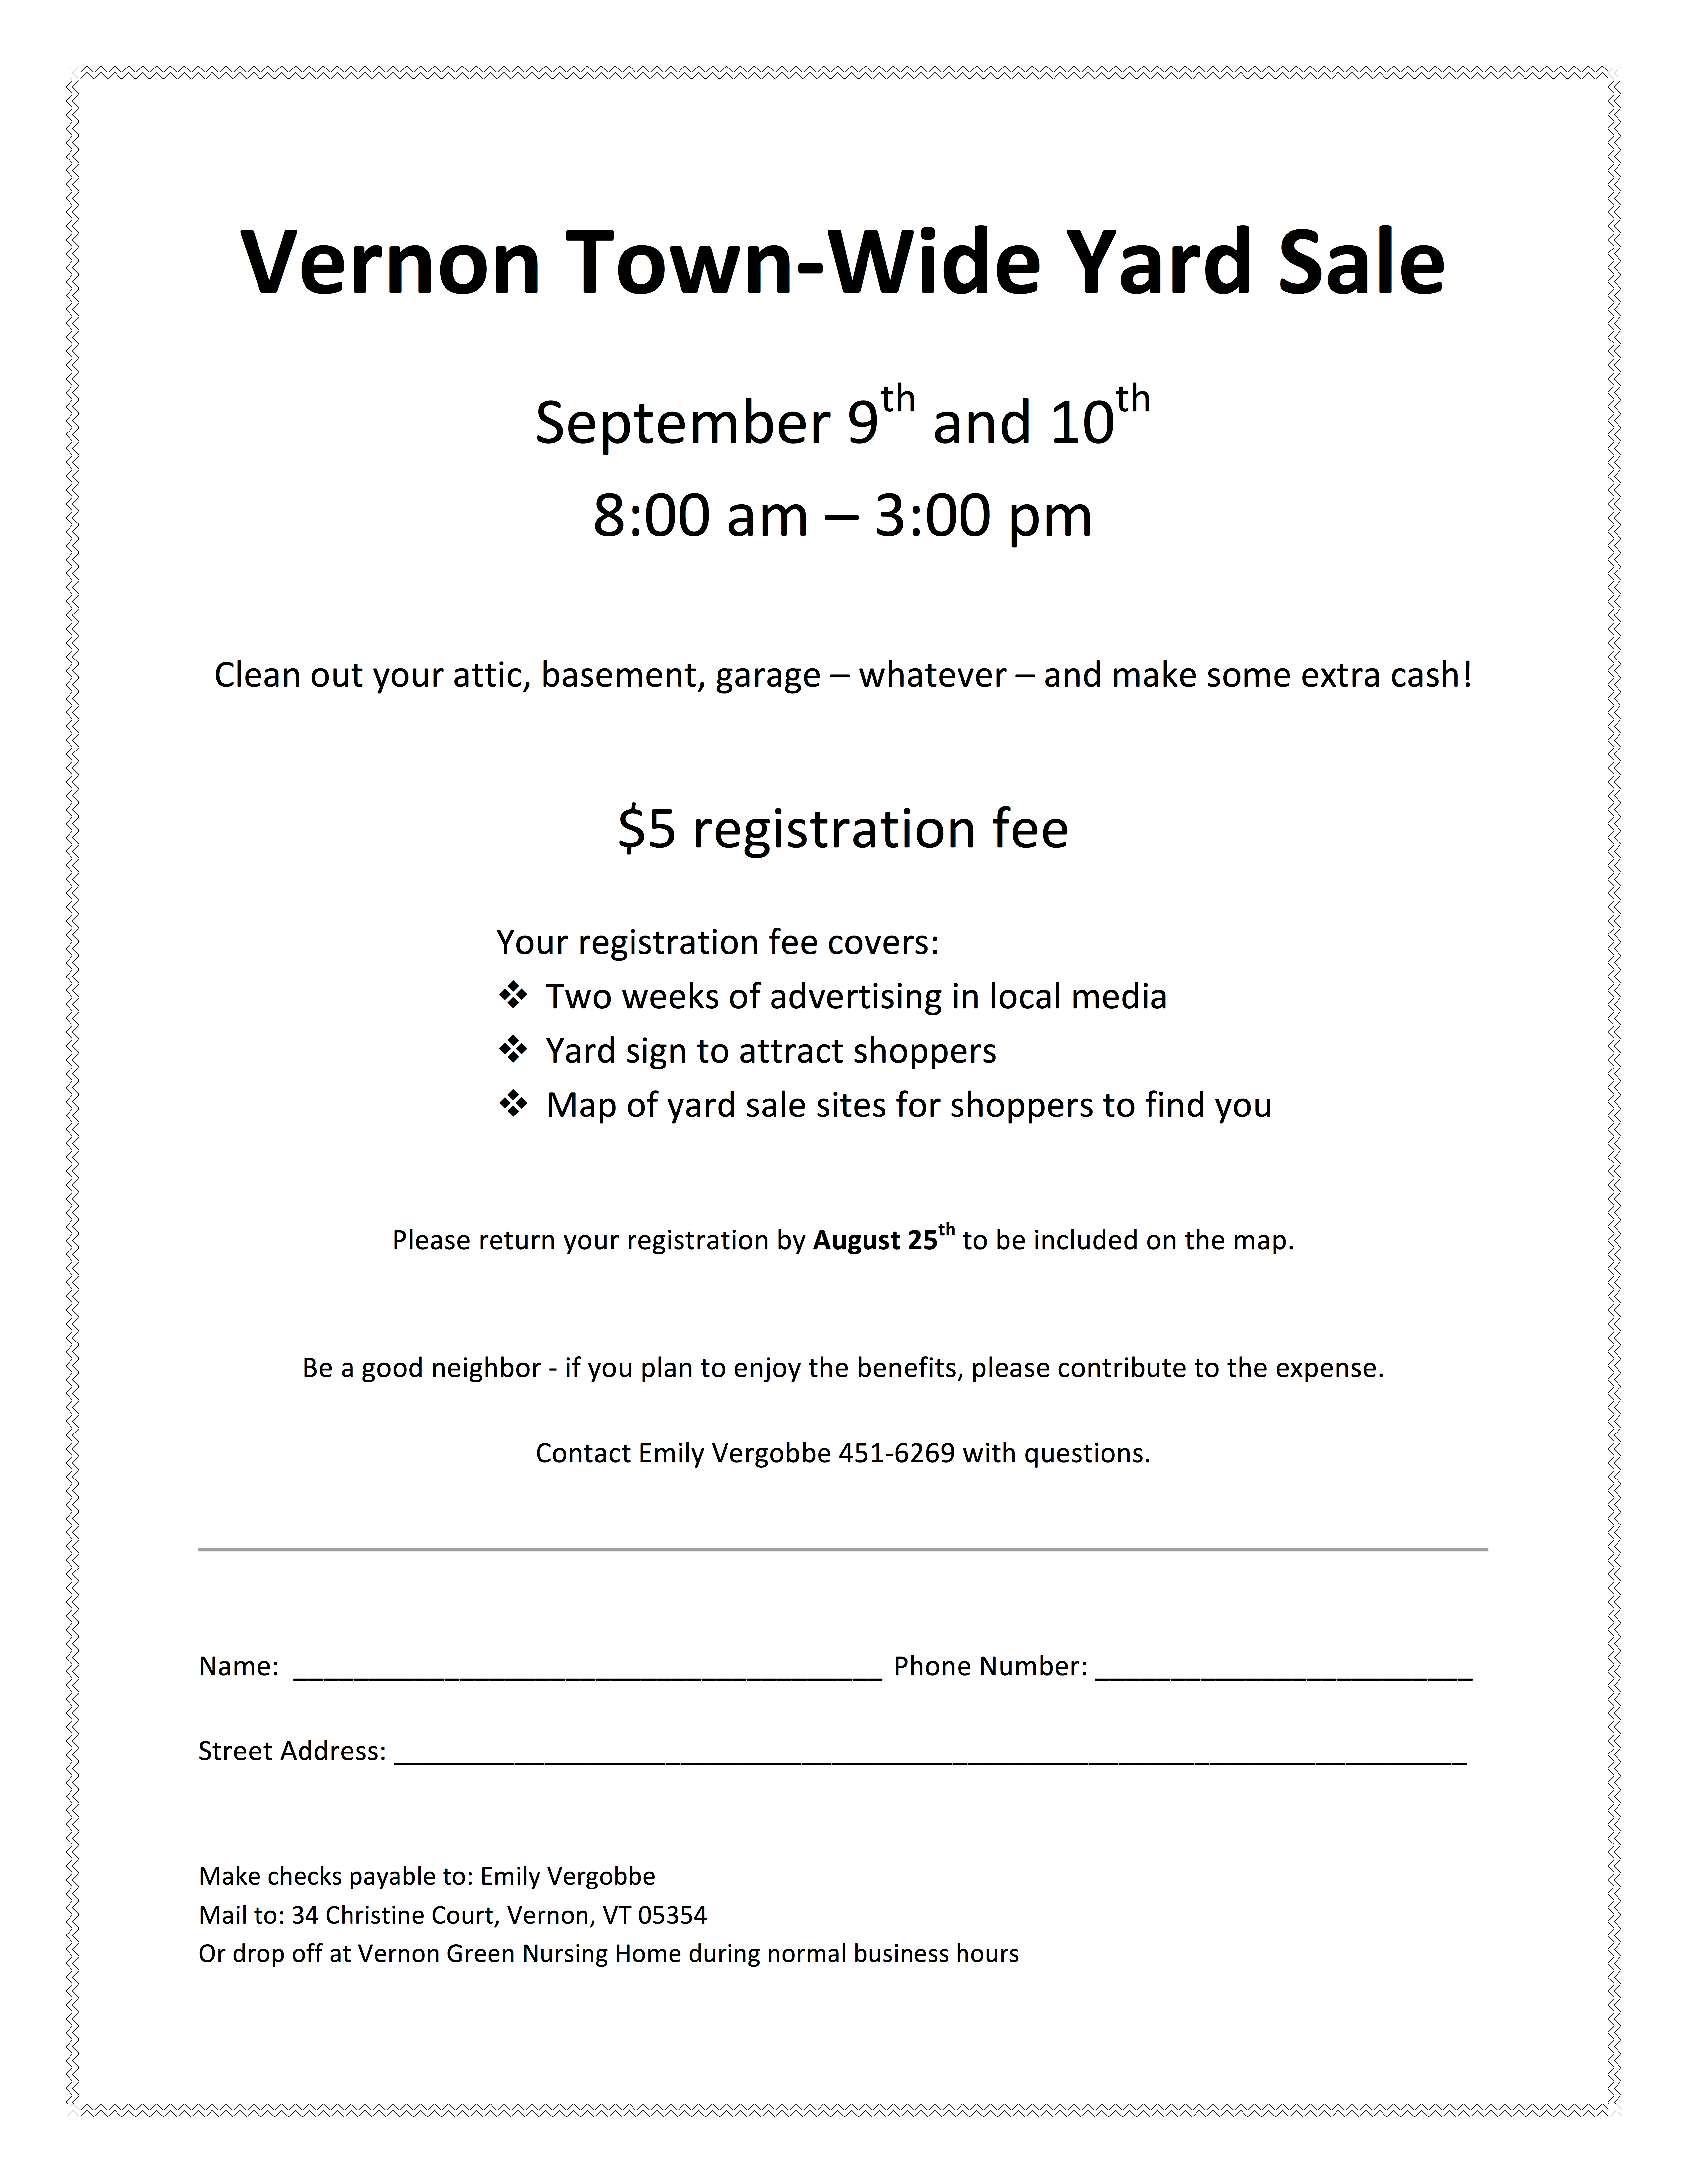 Sign up now for the Vernon Town-Wide Tag Sale — Sept. 9-10, 2017 ...